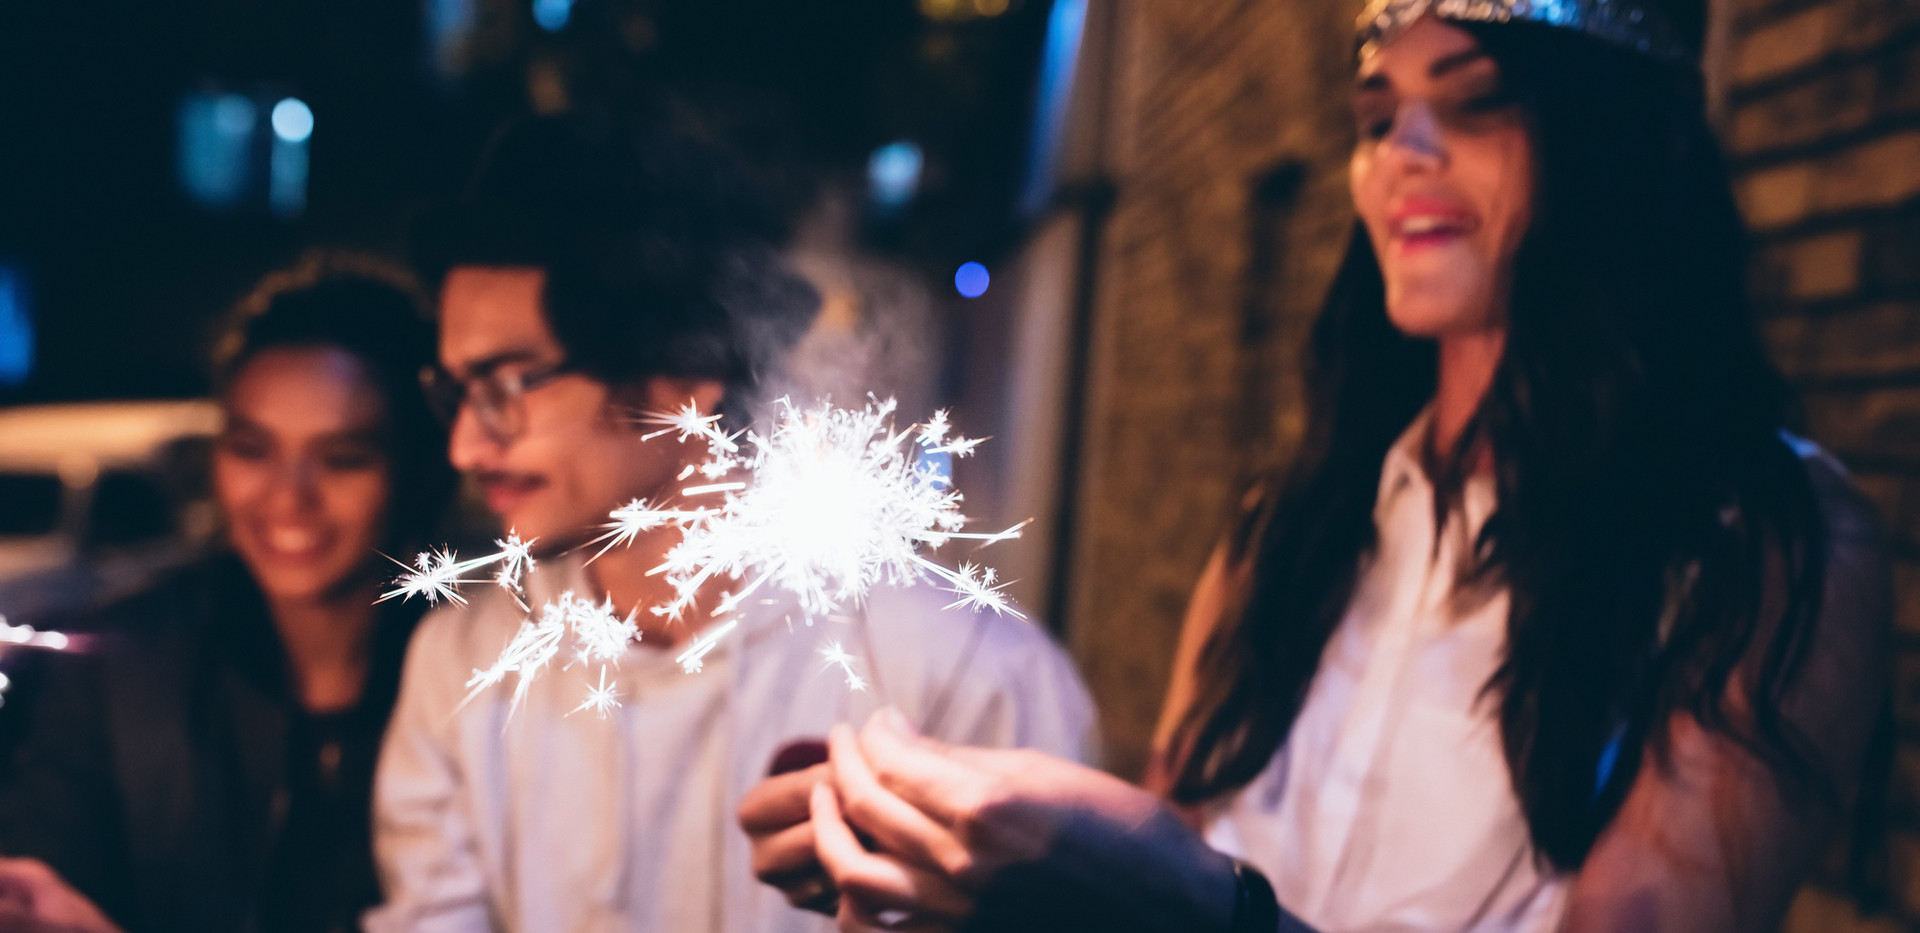 Woman with Sparklers